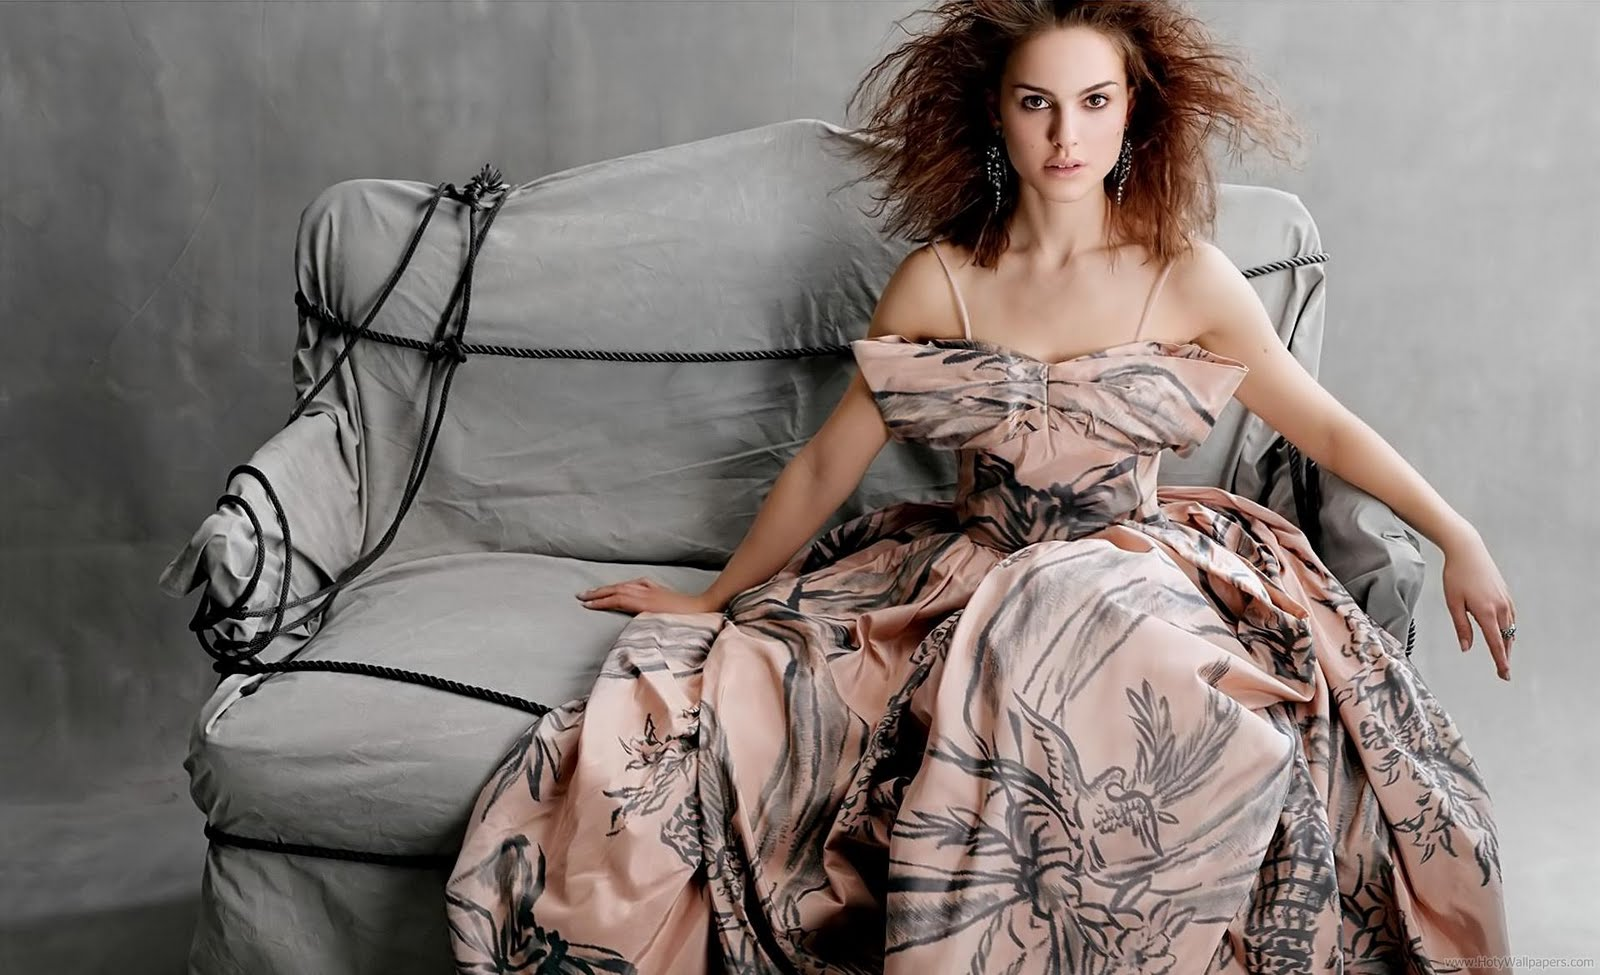 Natalie Portman 1 - Natalie Portman Photo Shoot Pics